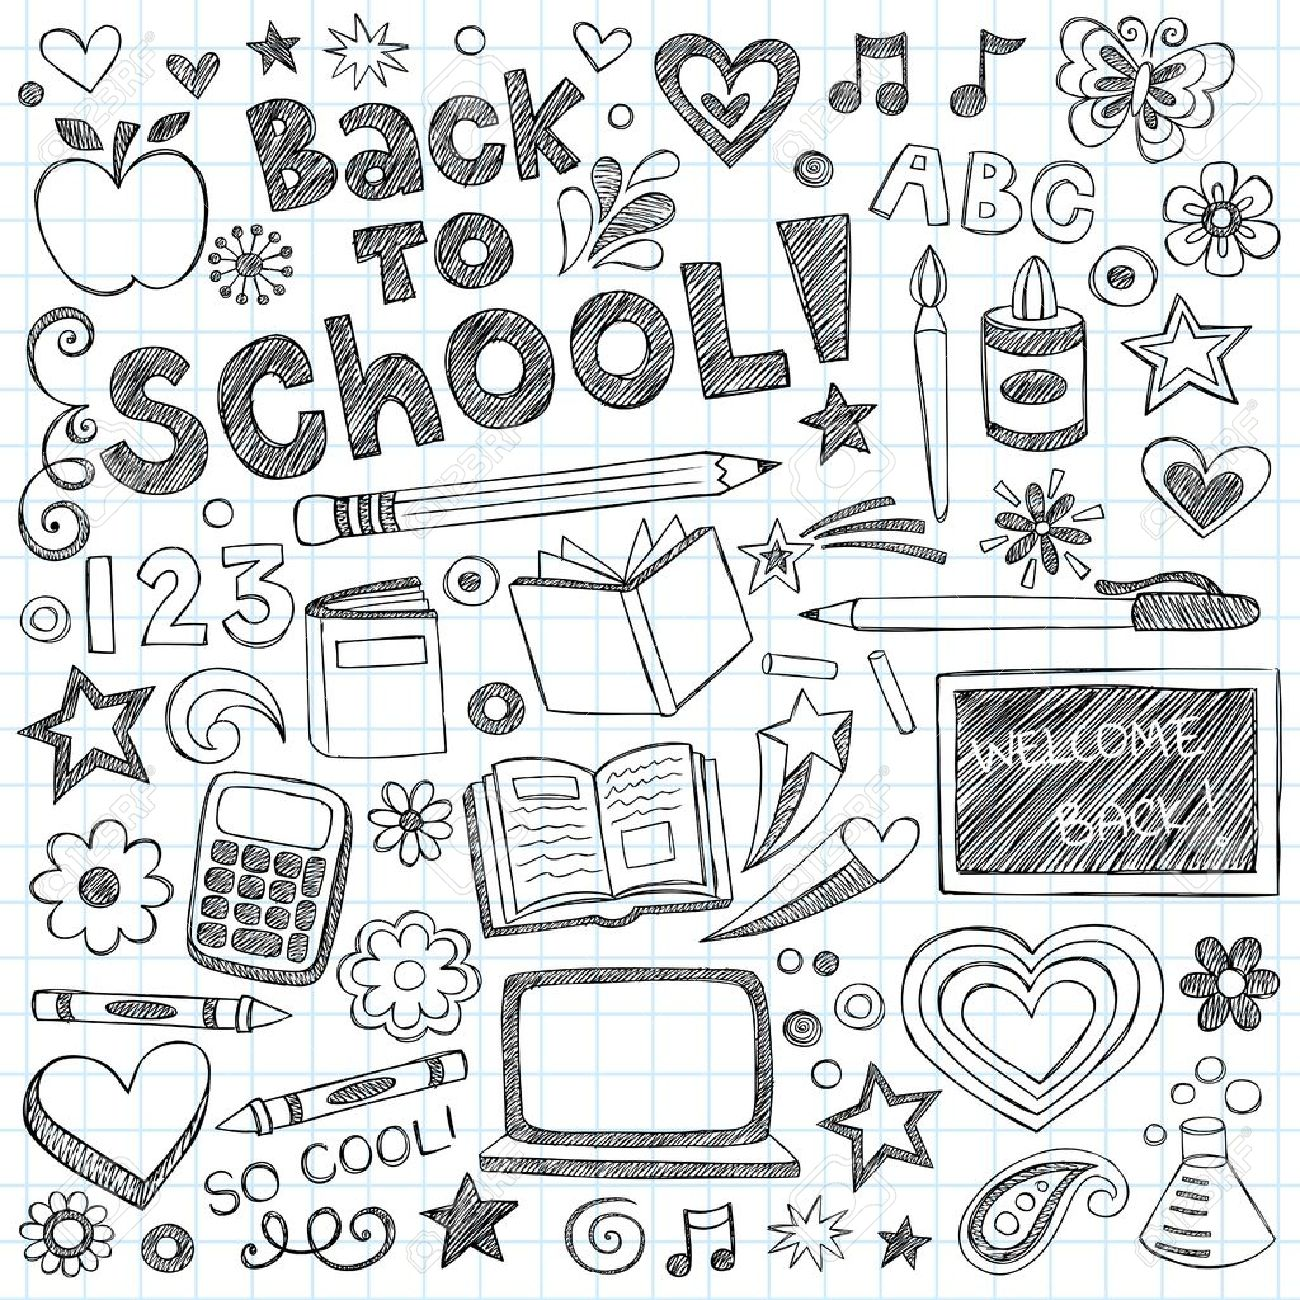 Back to School Supplies Sketchy Notebook Doodles with Lettering, Shooting Stars, and Swirls- Hand-Drawn Vector Illustration Design Elements on Lined Sketchbook Paper Background Stock Vector - 14397852